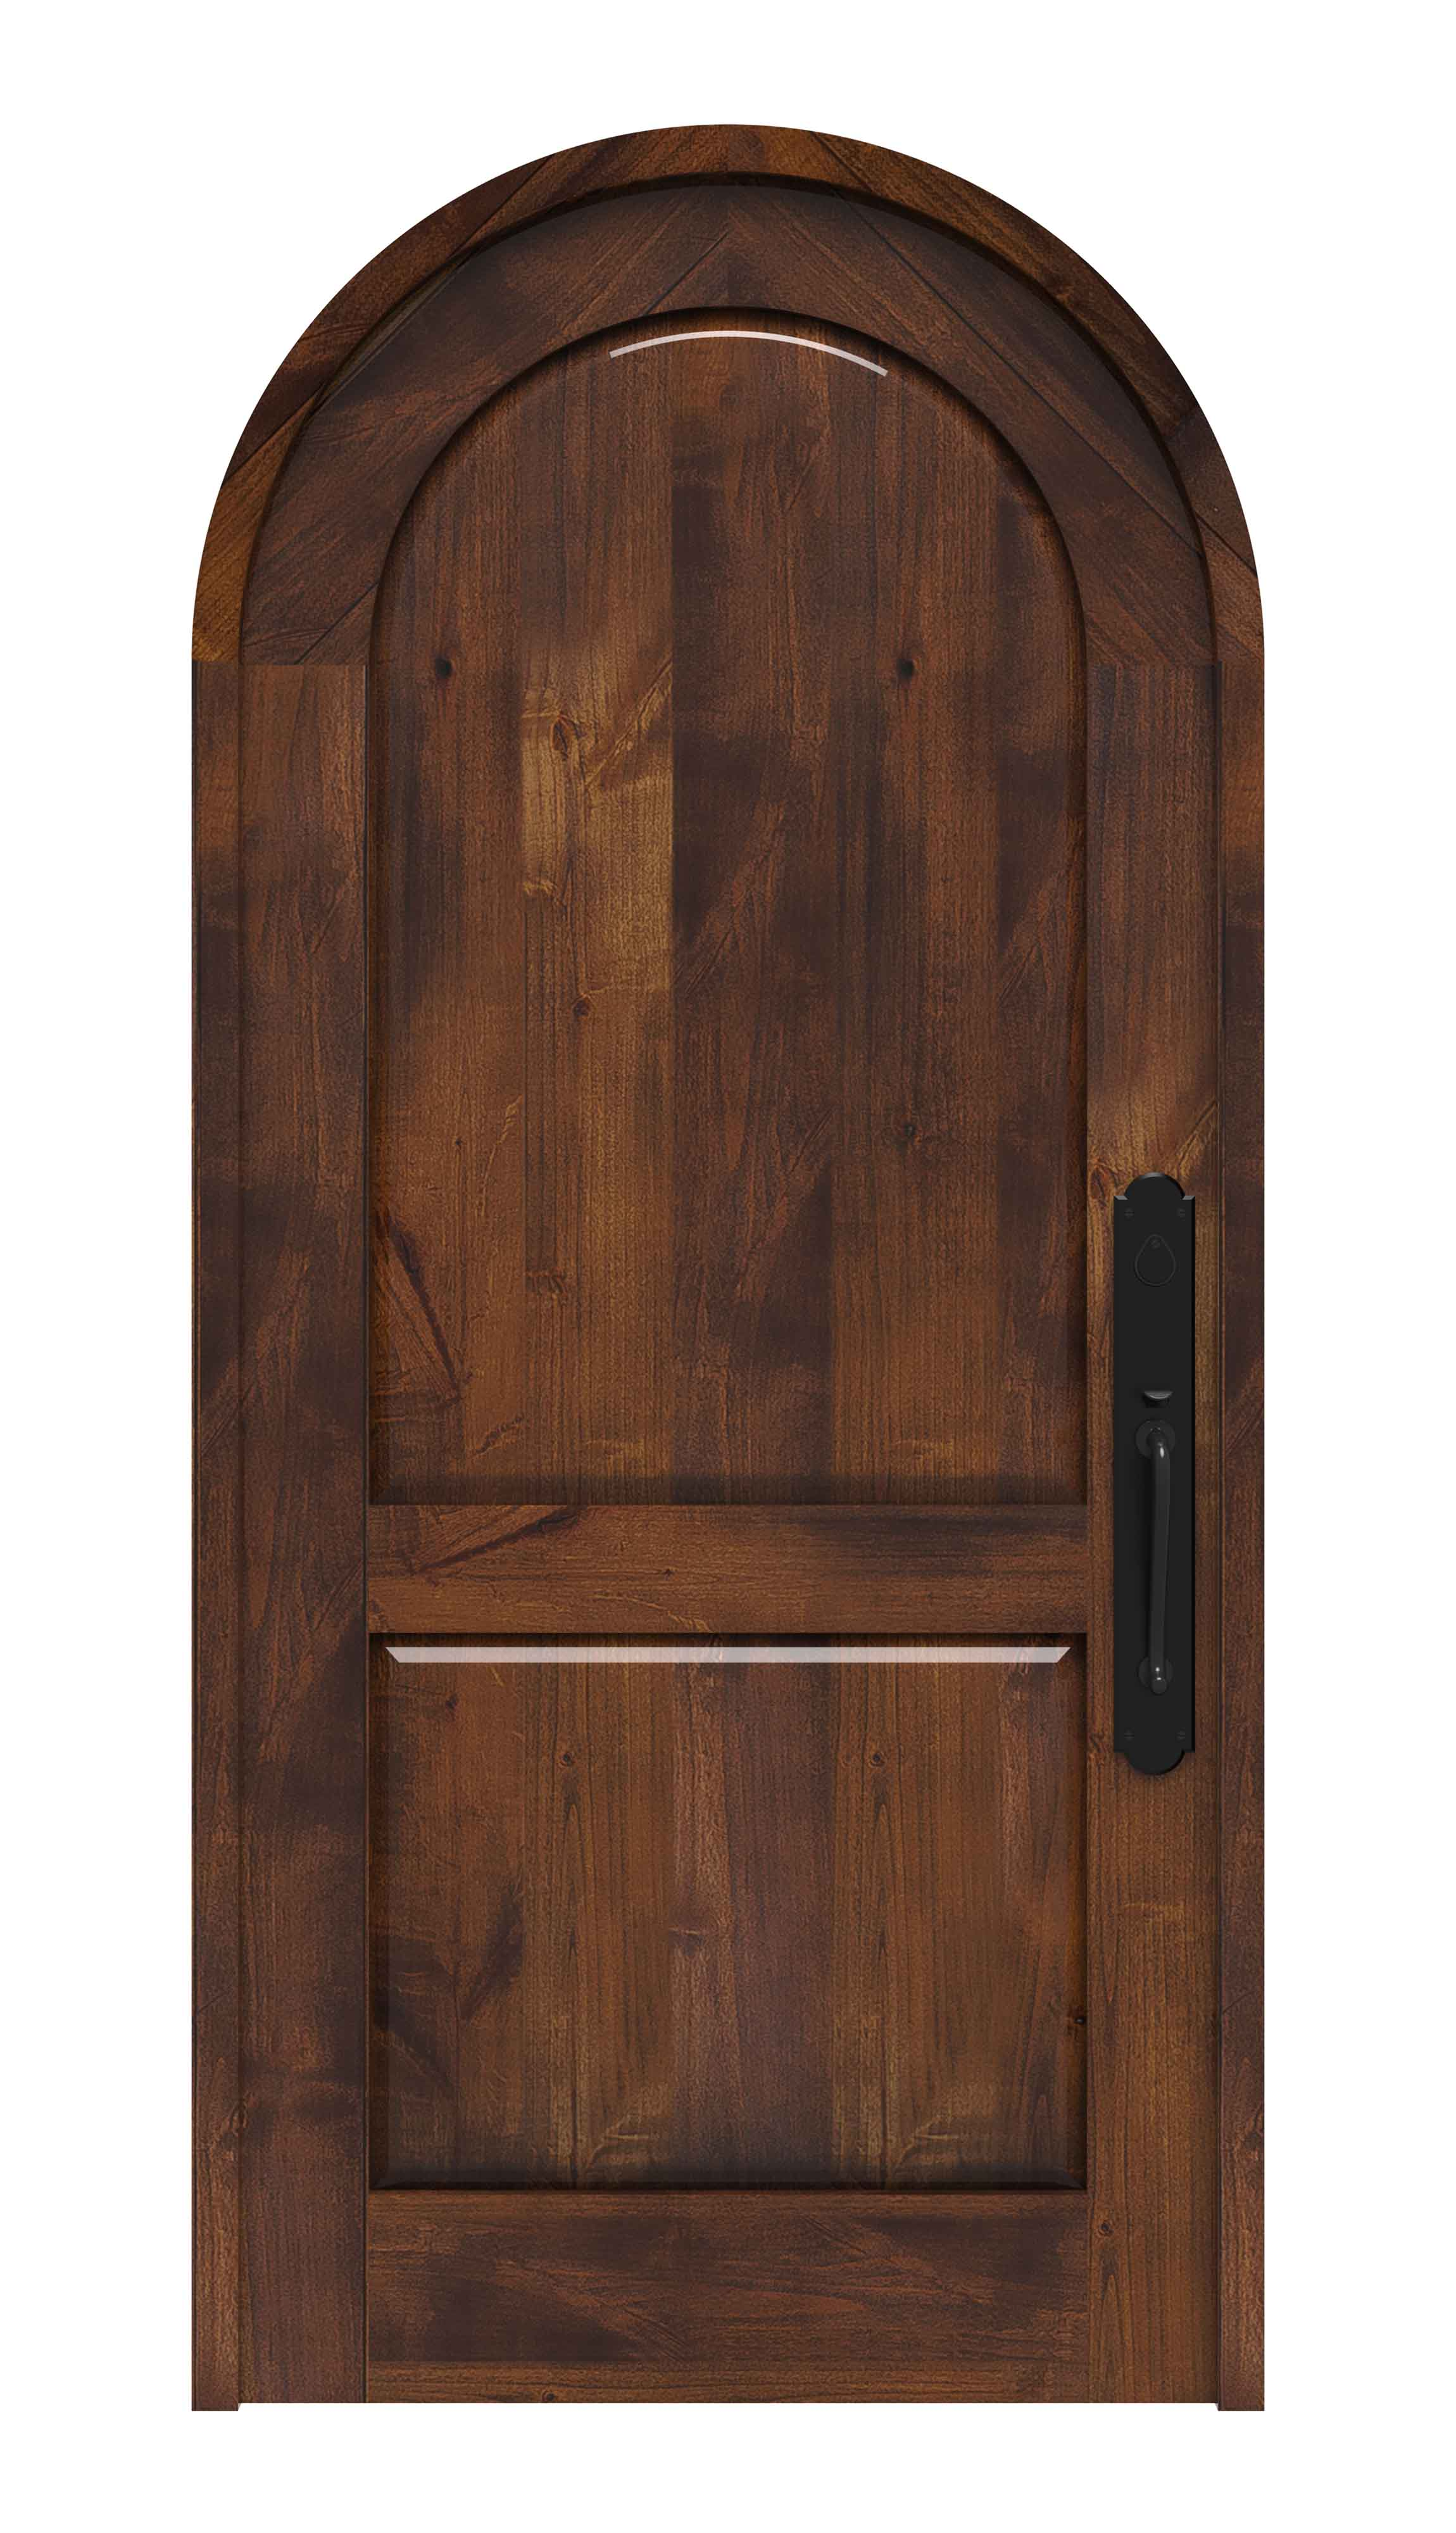 Tuscan Kitchen Cabinet Handles Arched Front Entry Door | Rustica Hardware